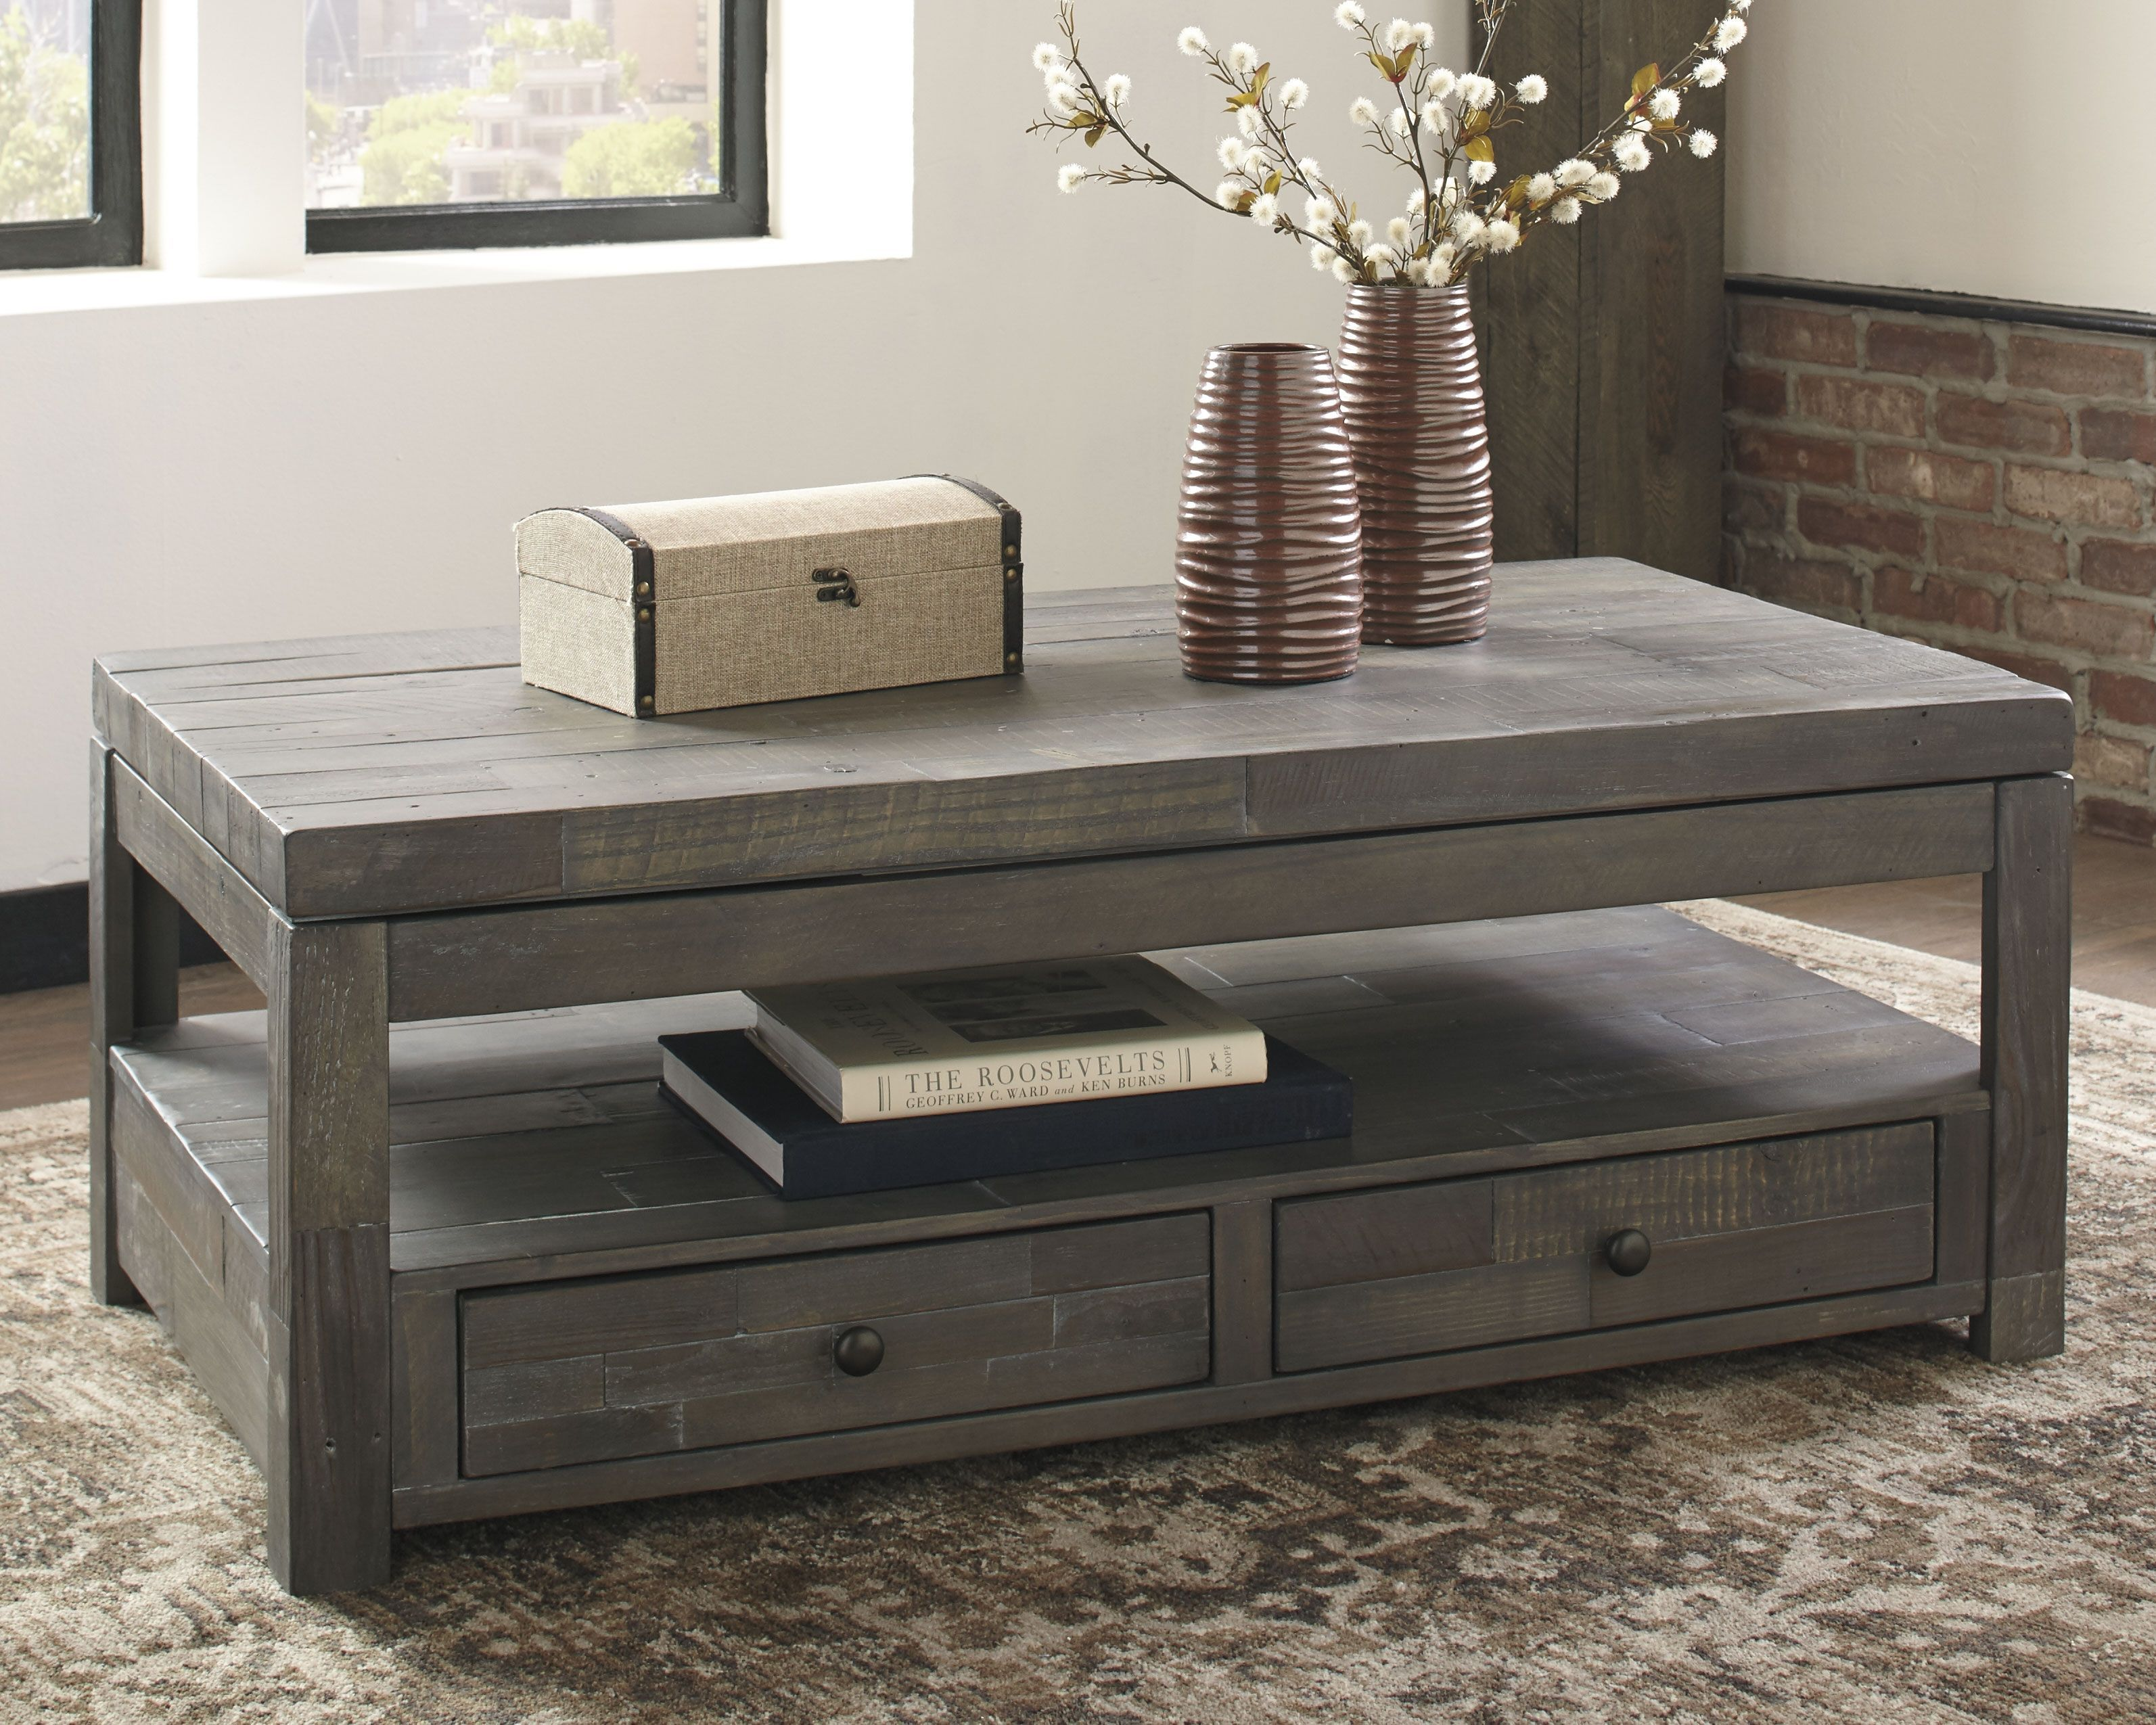 Discover The Best Lift Top Coffee Tables For Your Living Room